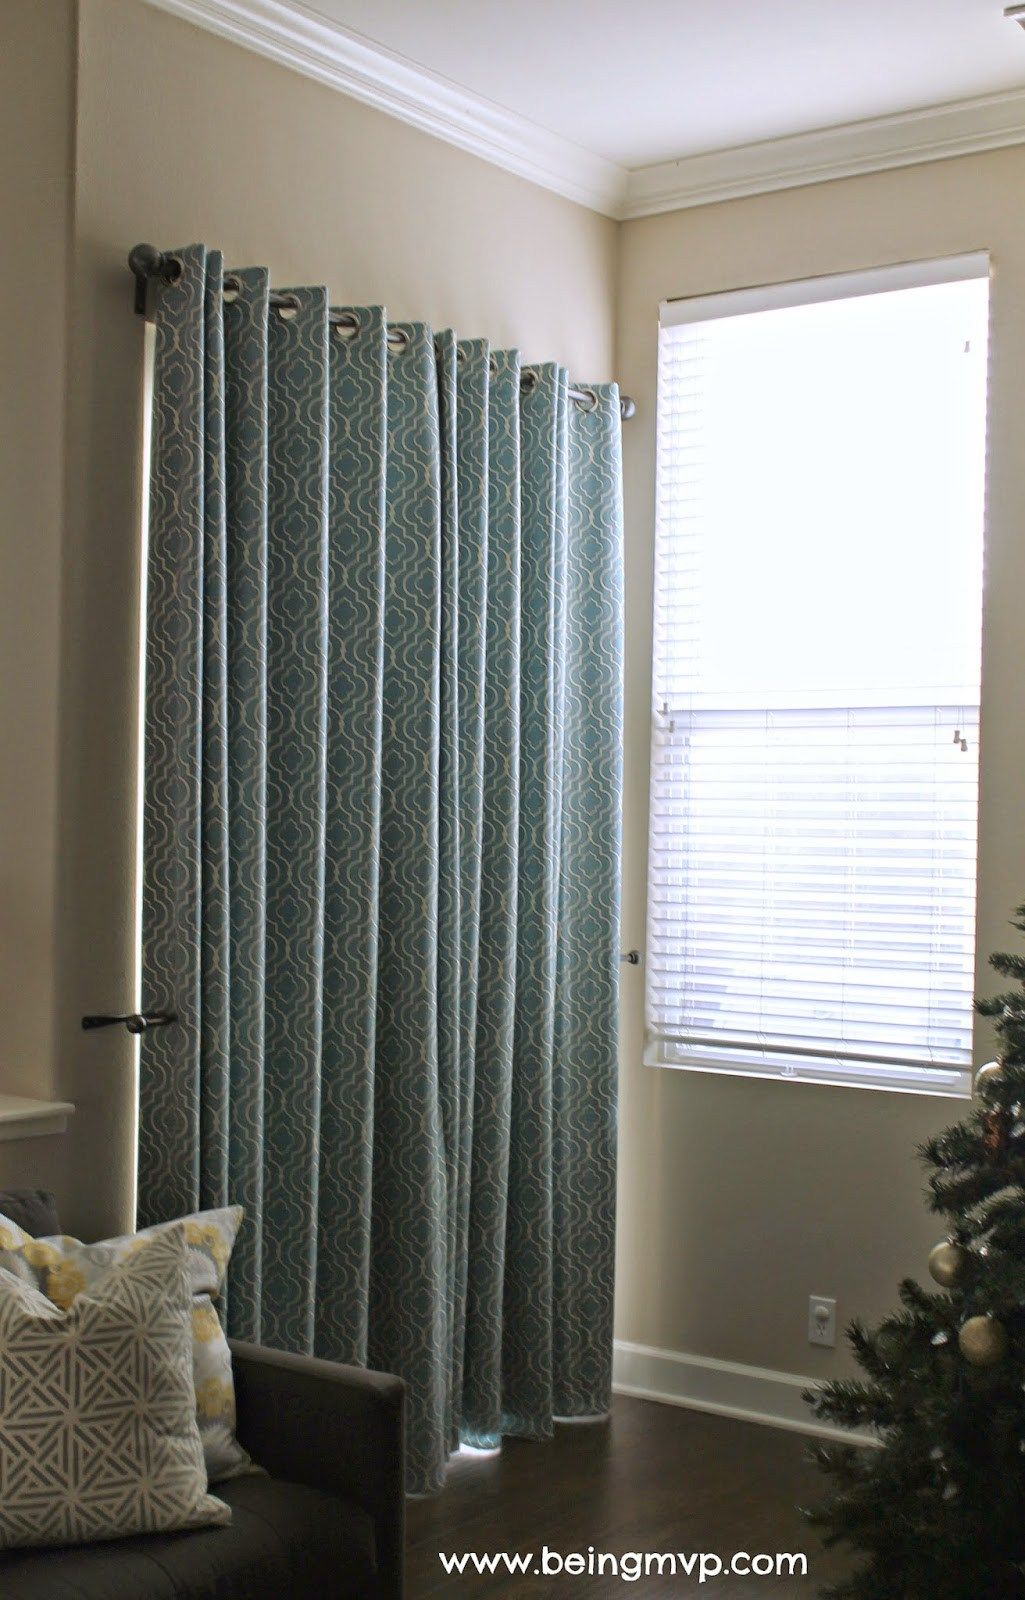 Window coverings for sliding glass doors that are actually cute